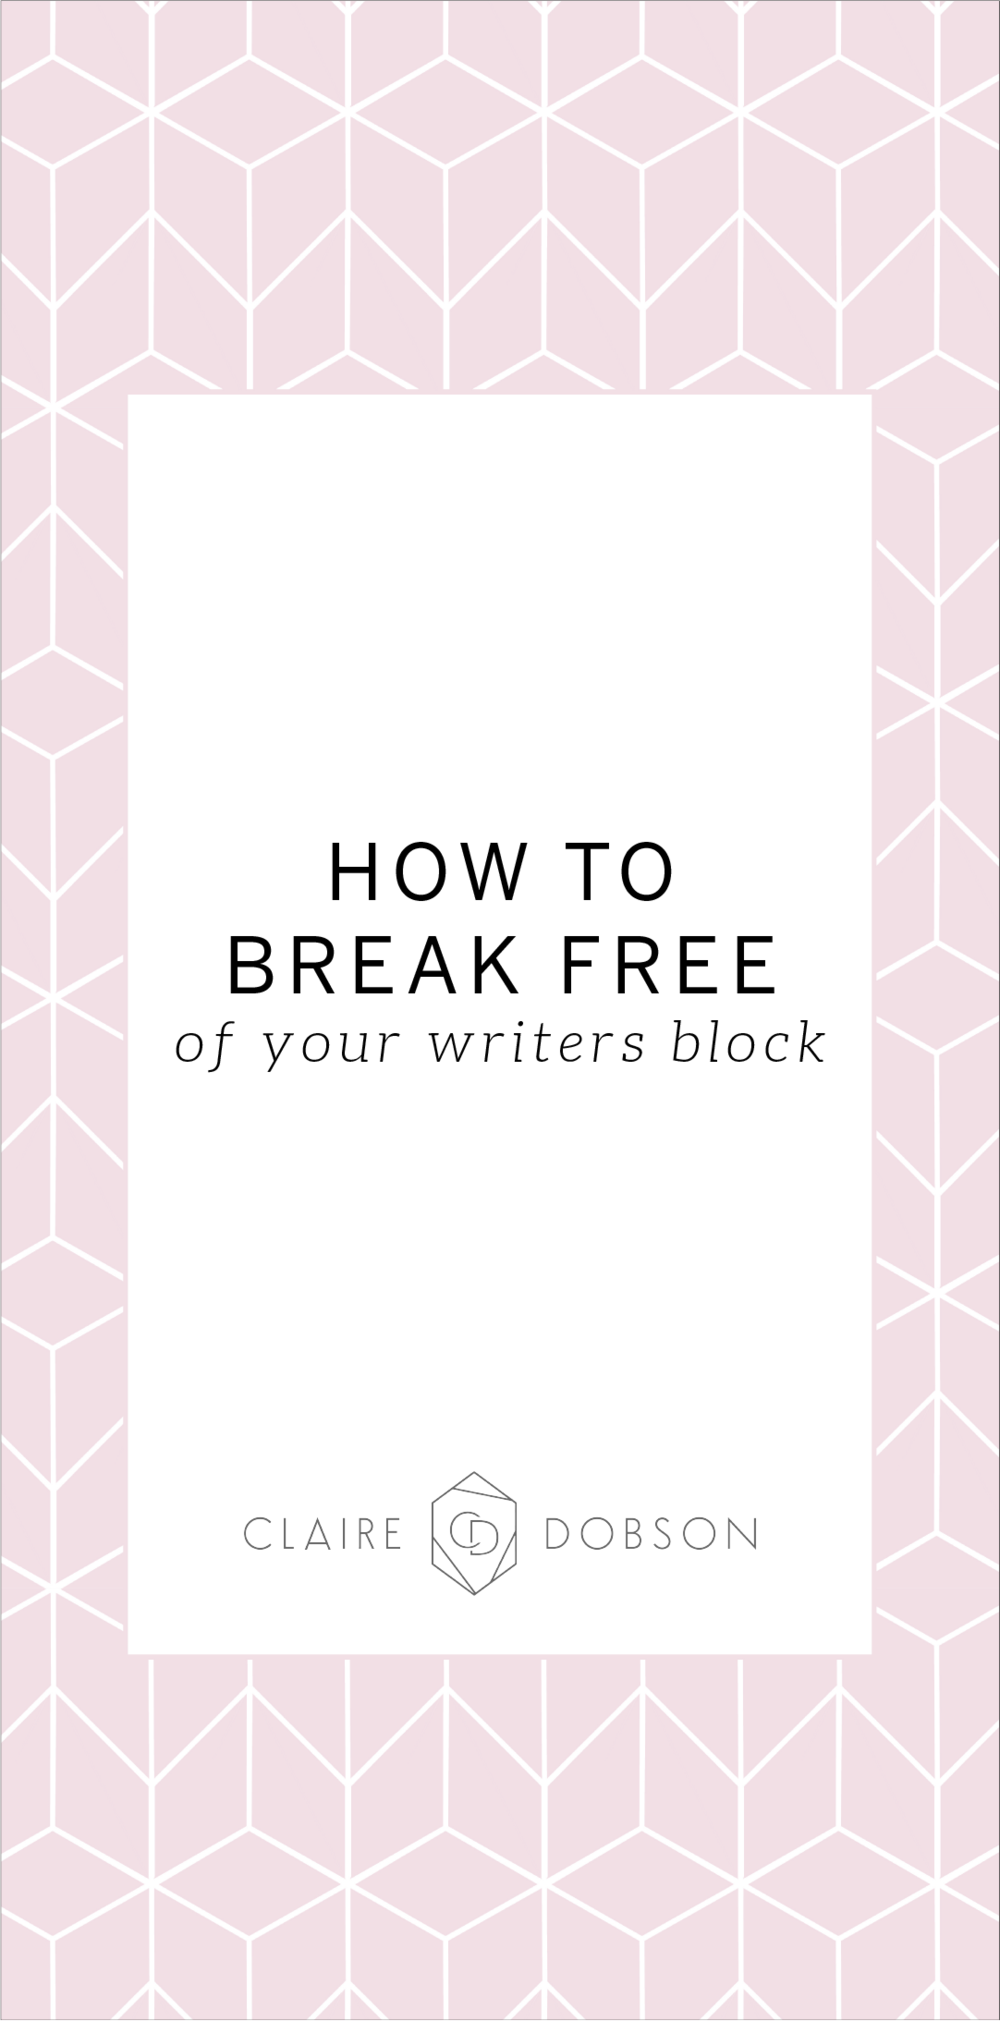 Selecting the perfect photo for your Instagram grid and designing your blog graphics is hard enough already. But what about when you have writer's block too? There are lot of causes of writer's block but there are also lots of ways to break free from it too. Check out our top tips on breaking free from your writer's block to create engaging content. #WritersBlock #InstagramCaptions #InstagramTips #InstagramForBusiness